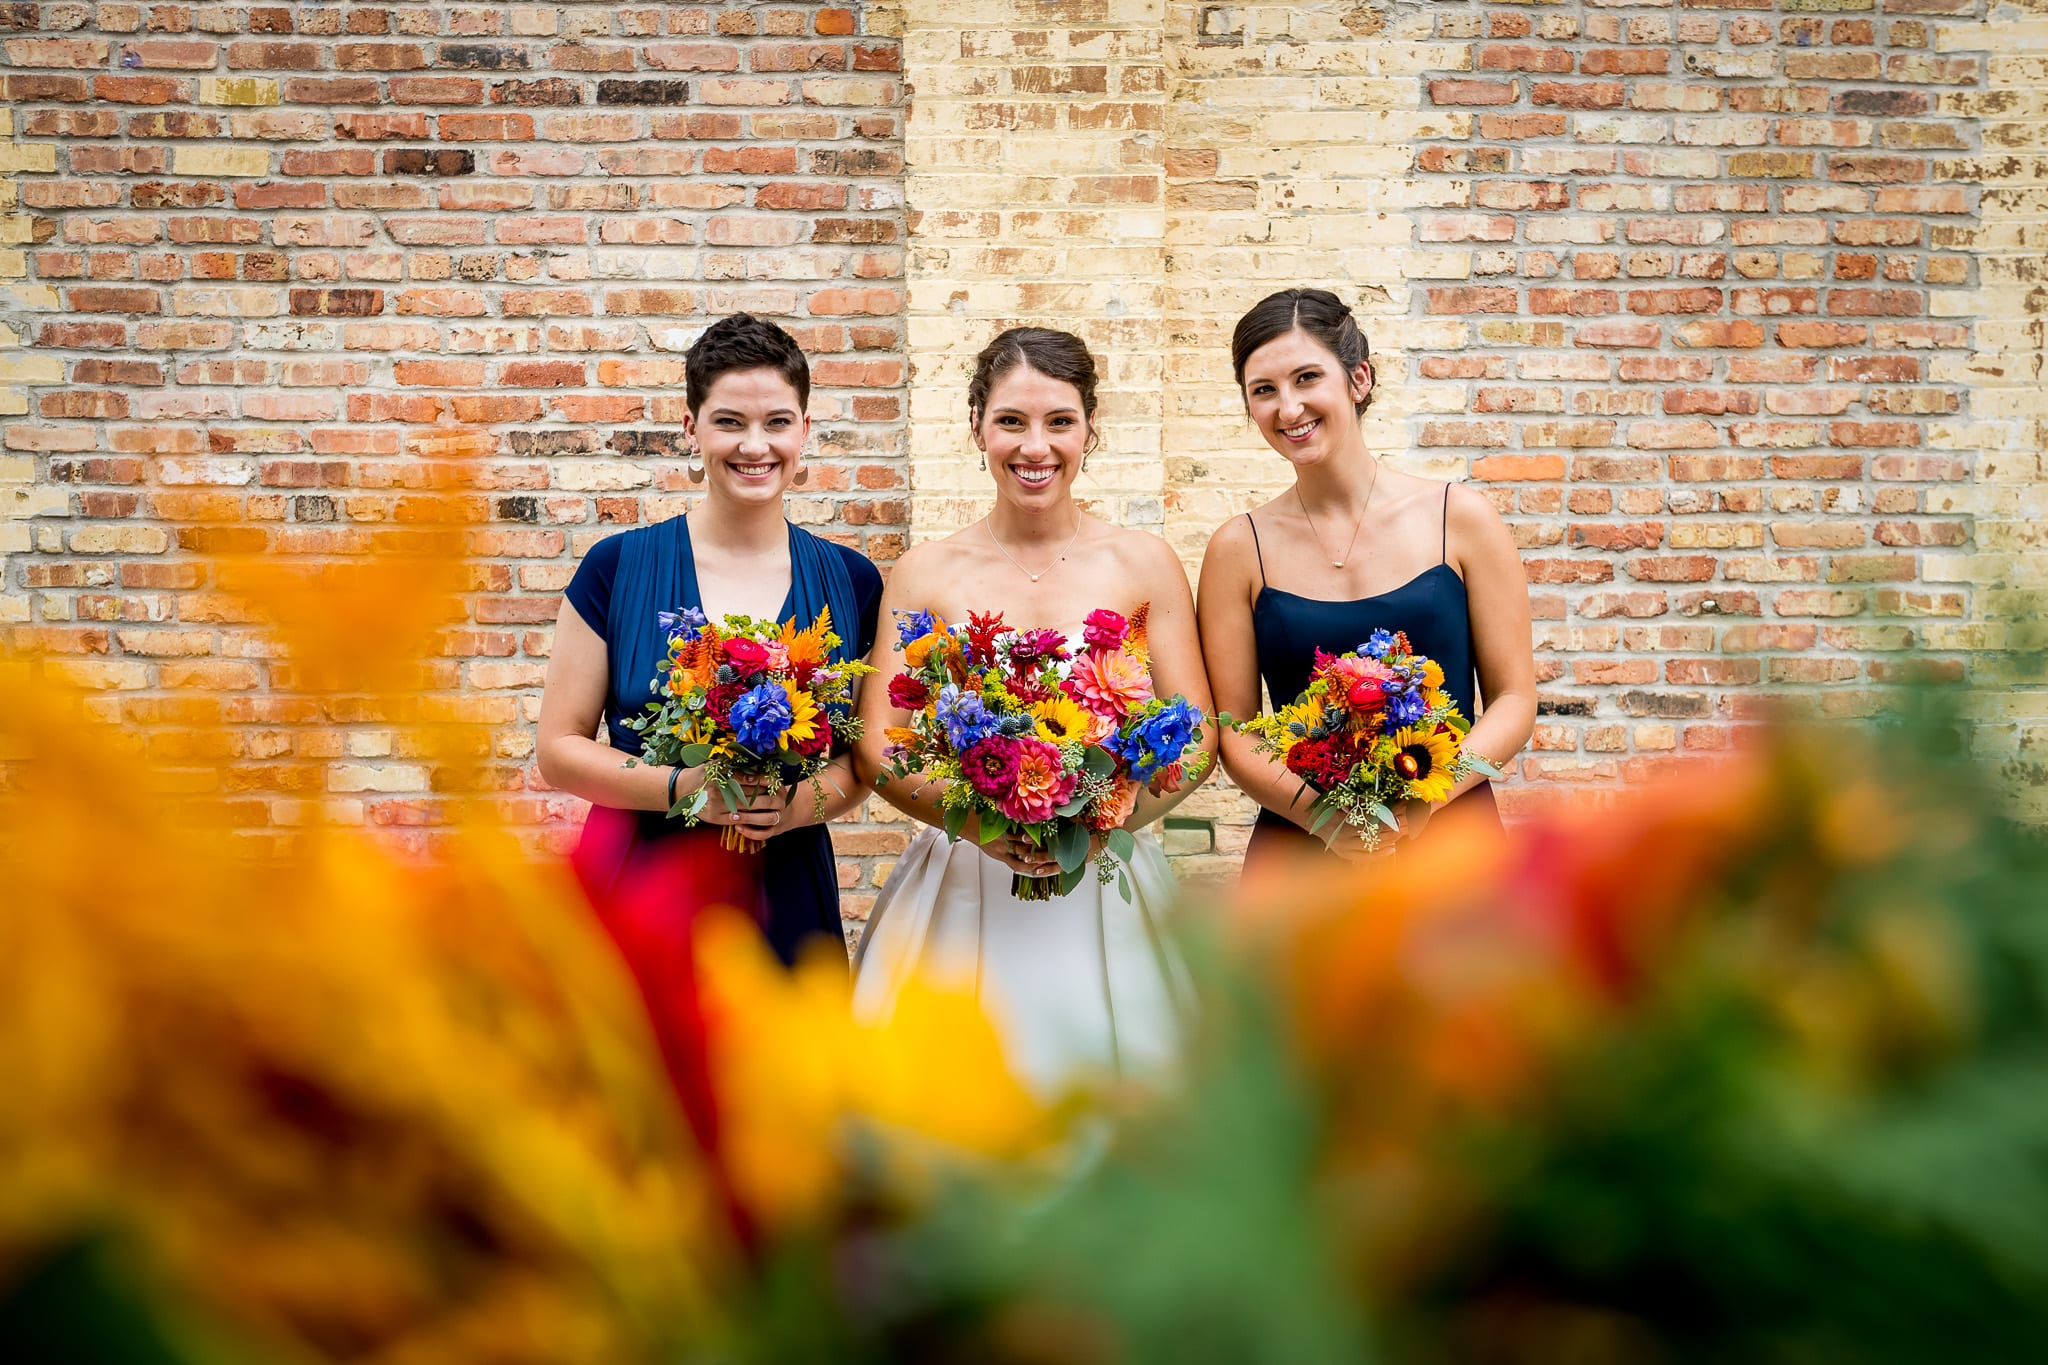 Bride and her sisters pose in front the brick wall of the Nicollet Island Pavilion with flowers surrounding them